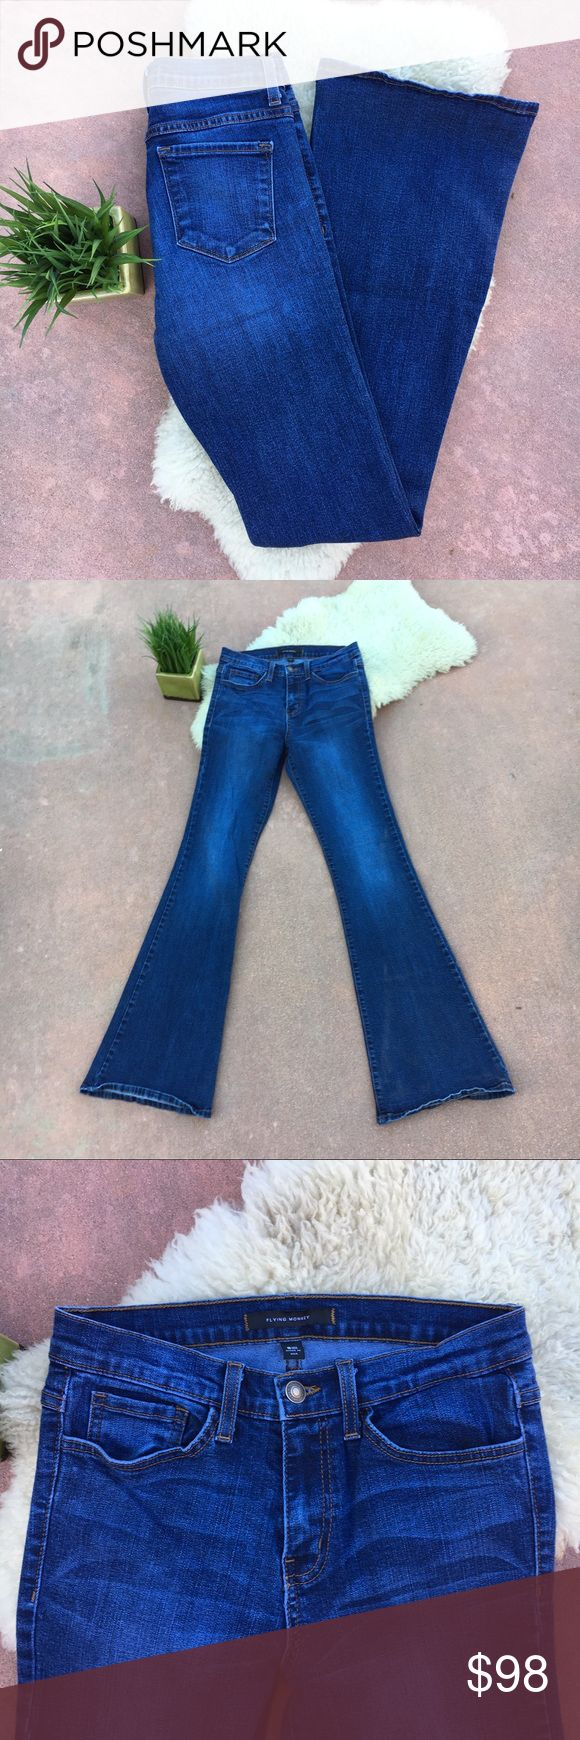 Flying Monkey Flare Bell Bottom Jeans 28 EUC! Close to new! Feminine, flirty and Retro chic! Bell bottom blue jeans! Measurements coming ASAP. Bundle and save. Offers warmly welcomed! Flying Monkey Jeans Flare & Wide Leg